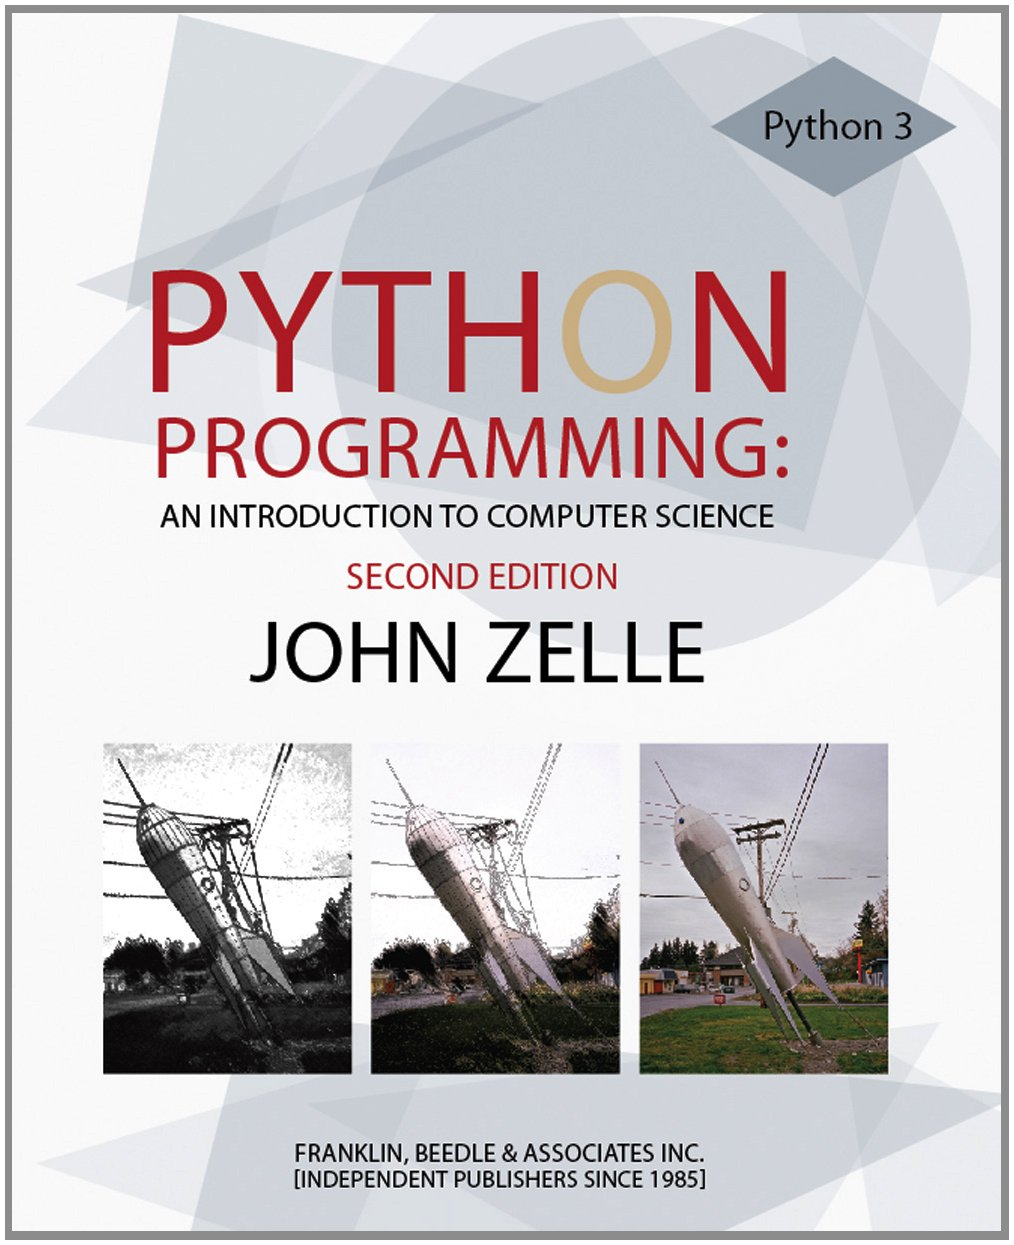 an introduction to buying a computer Python programming: an introduction to computer science [john zelle] on amazoncom free shipping on qualifying offers also, i'd also say don't buy this book if you already have a good grounding in some other computer programming language.